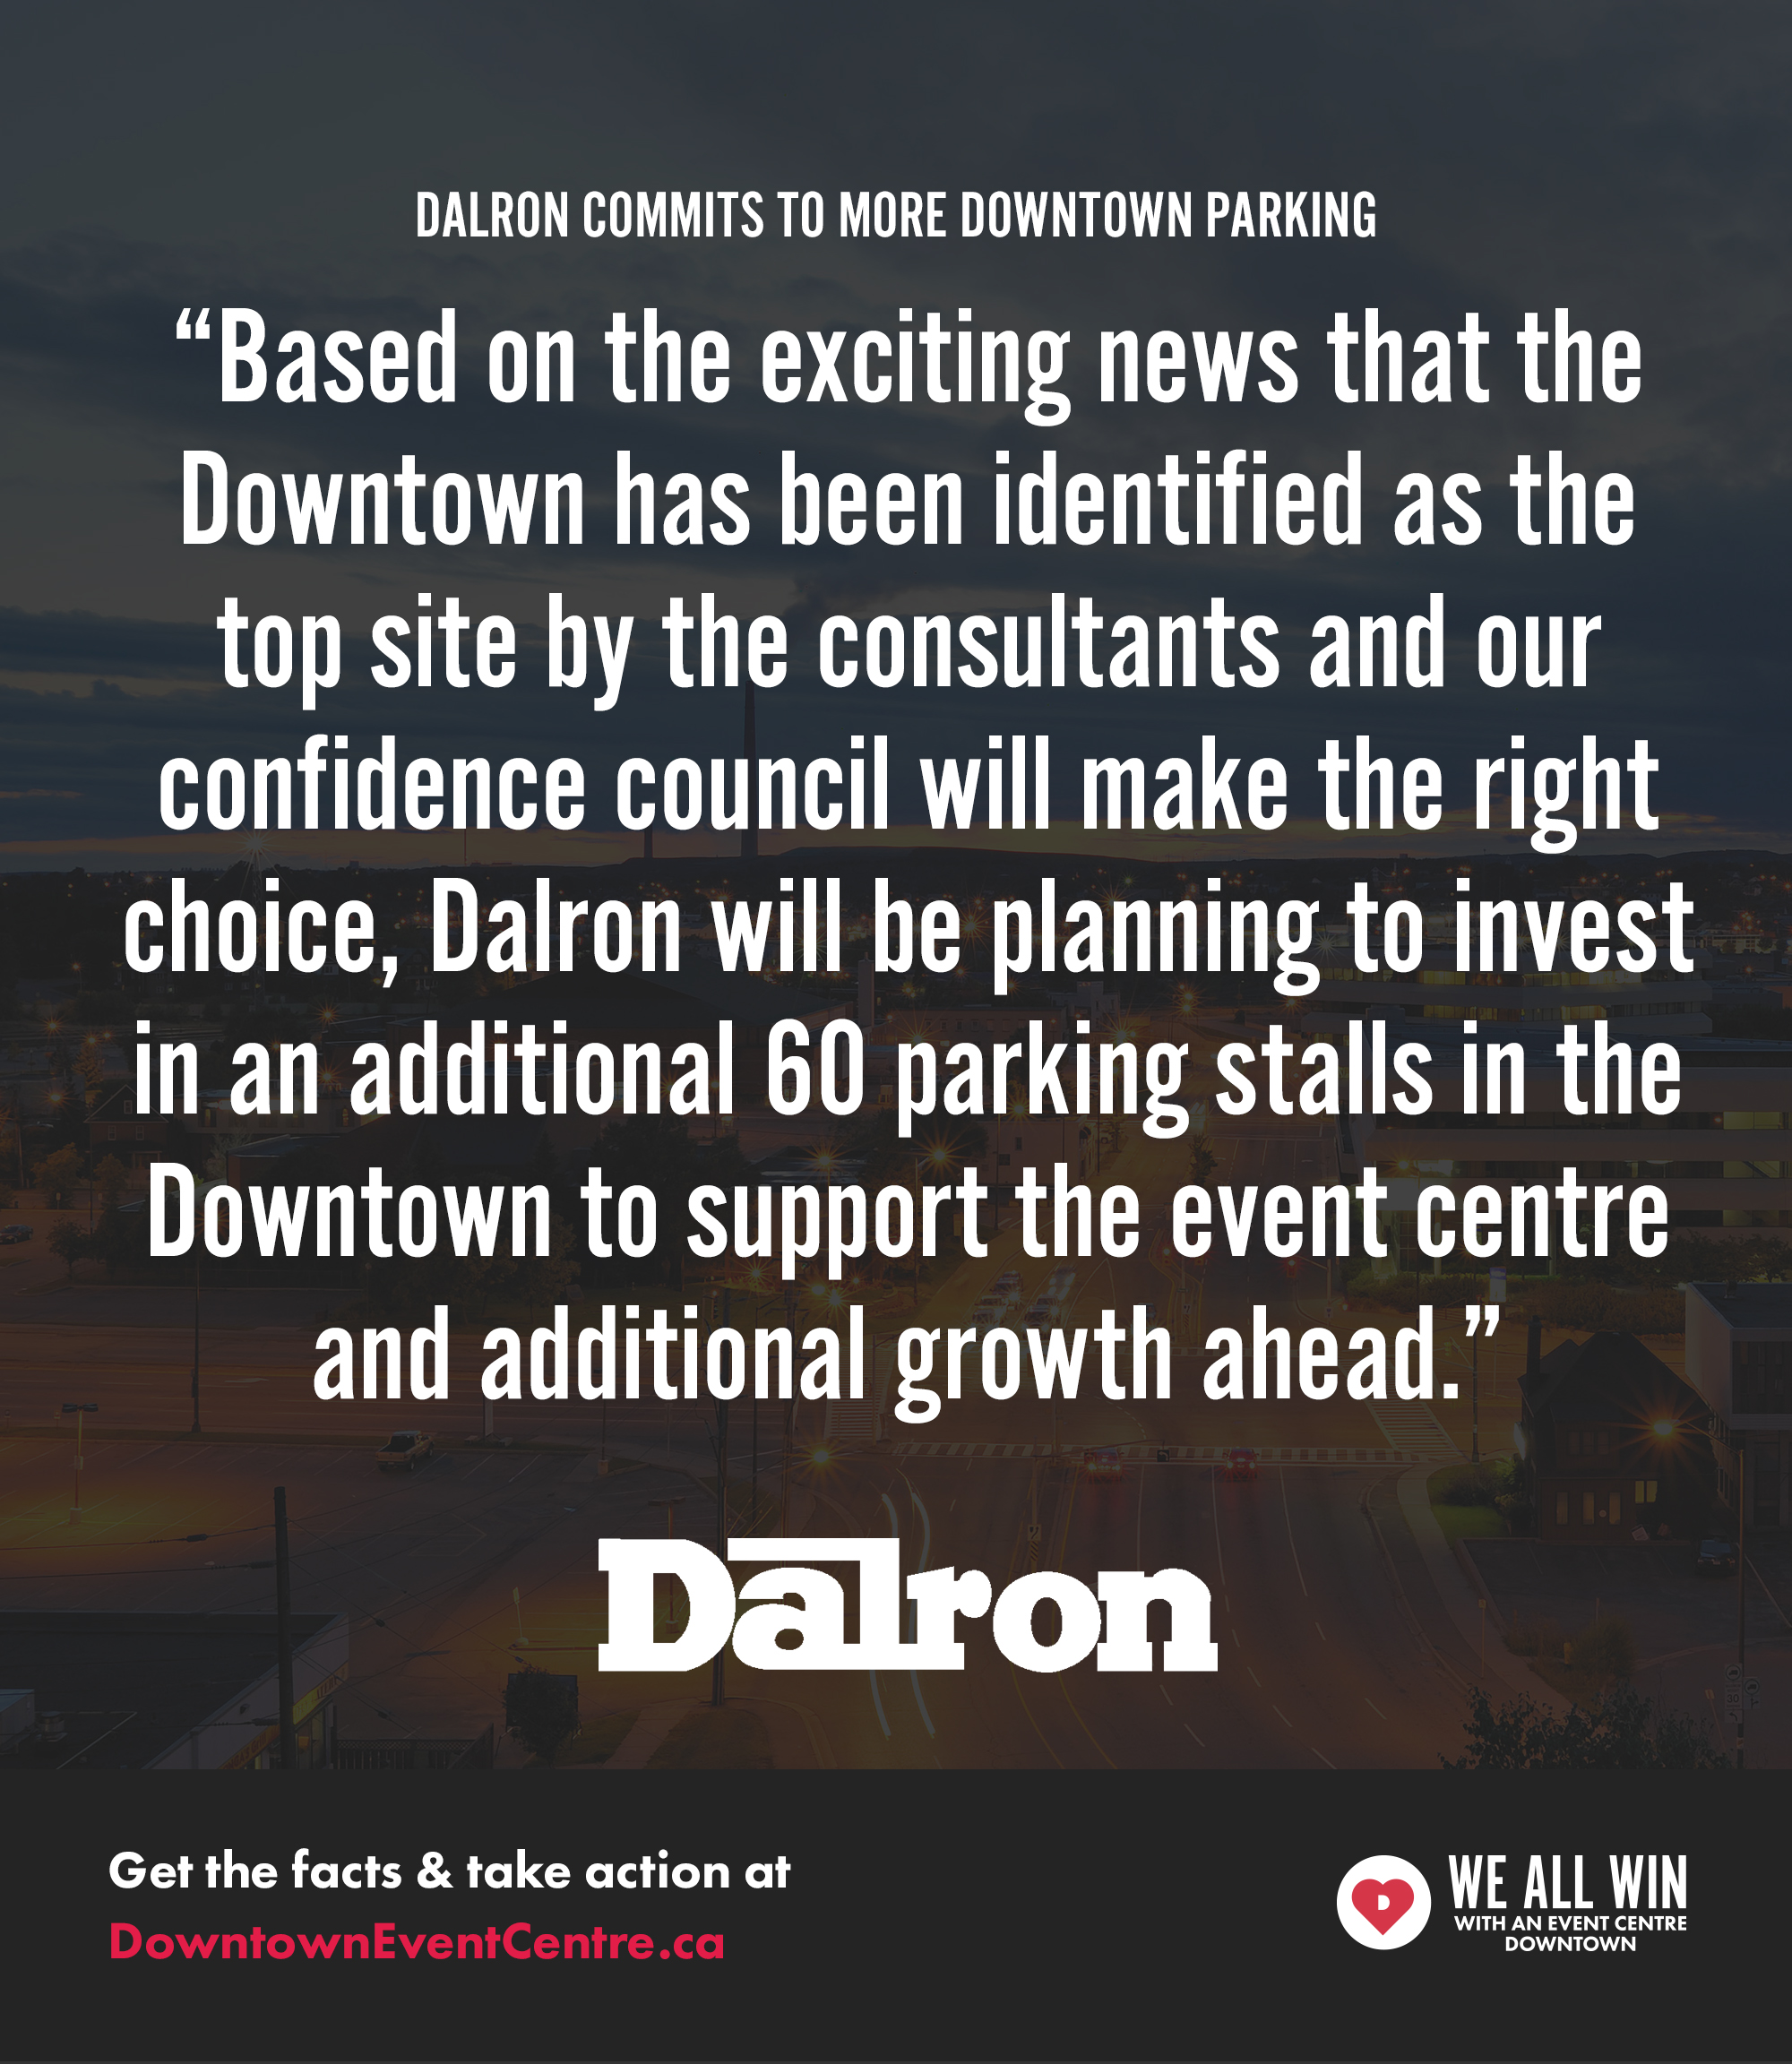 Downtown_QuoteDalron.jpg